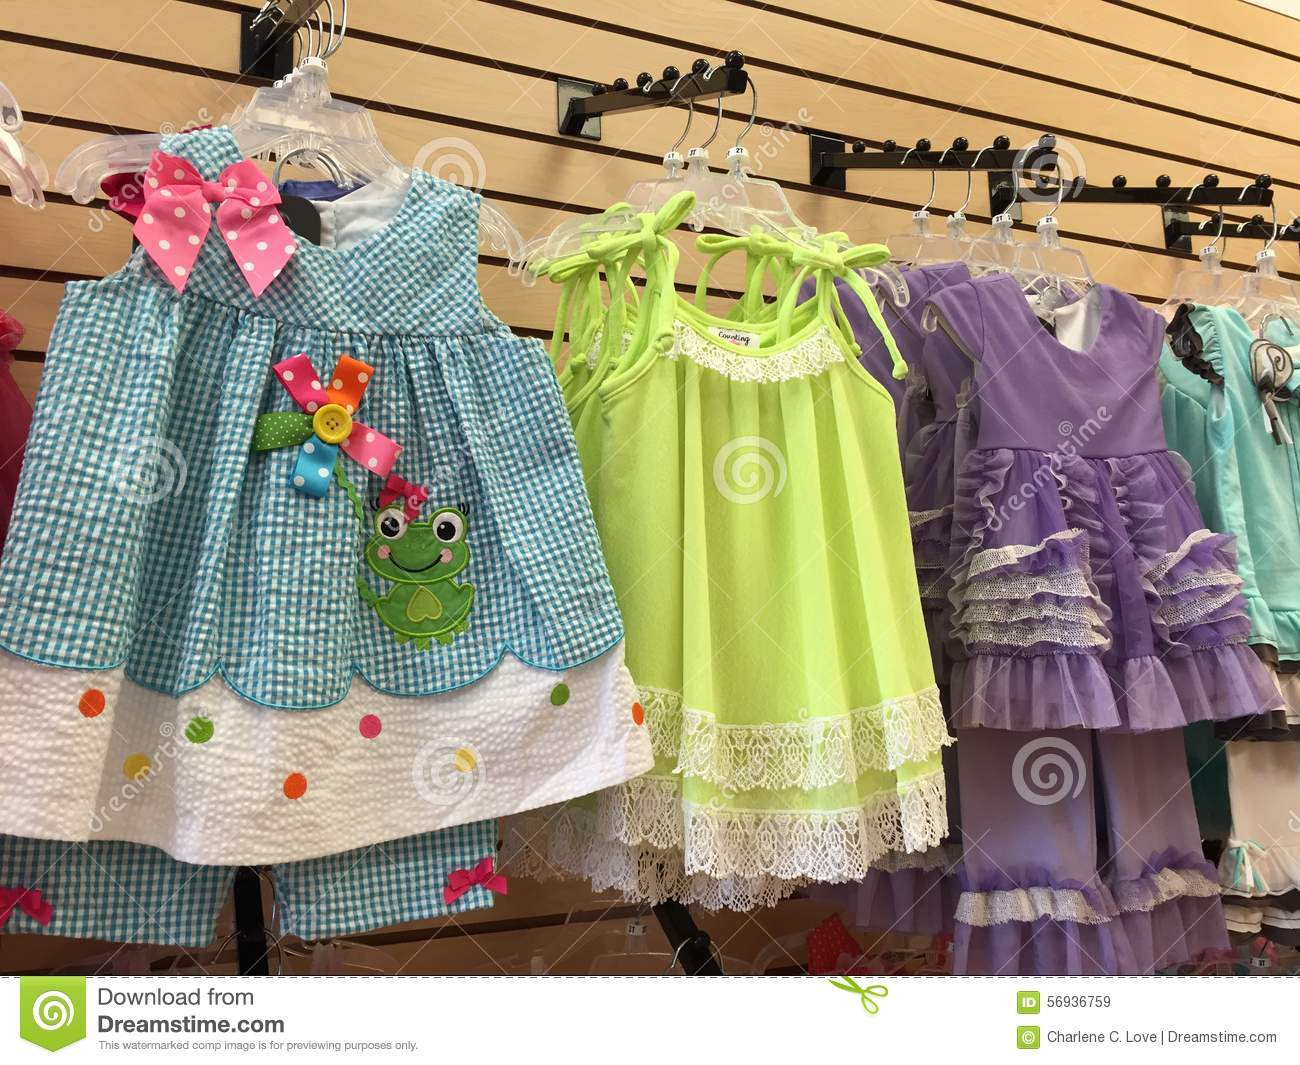 Girls Store Display Of Play Clothes Stock Photo - Image: 56936759